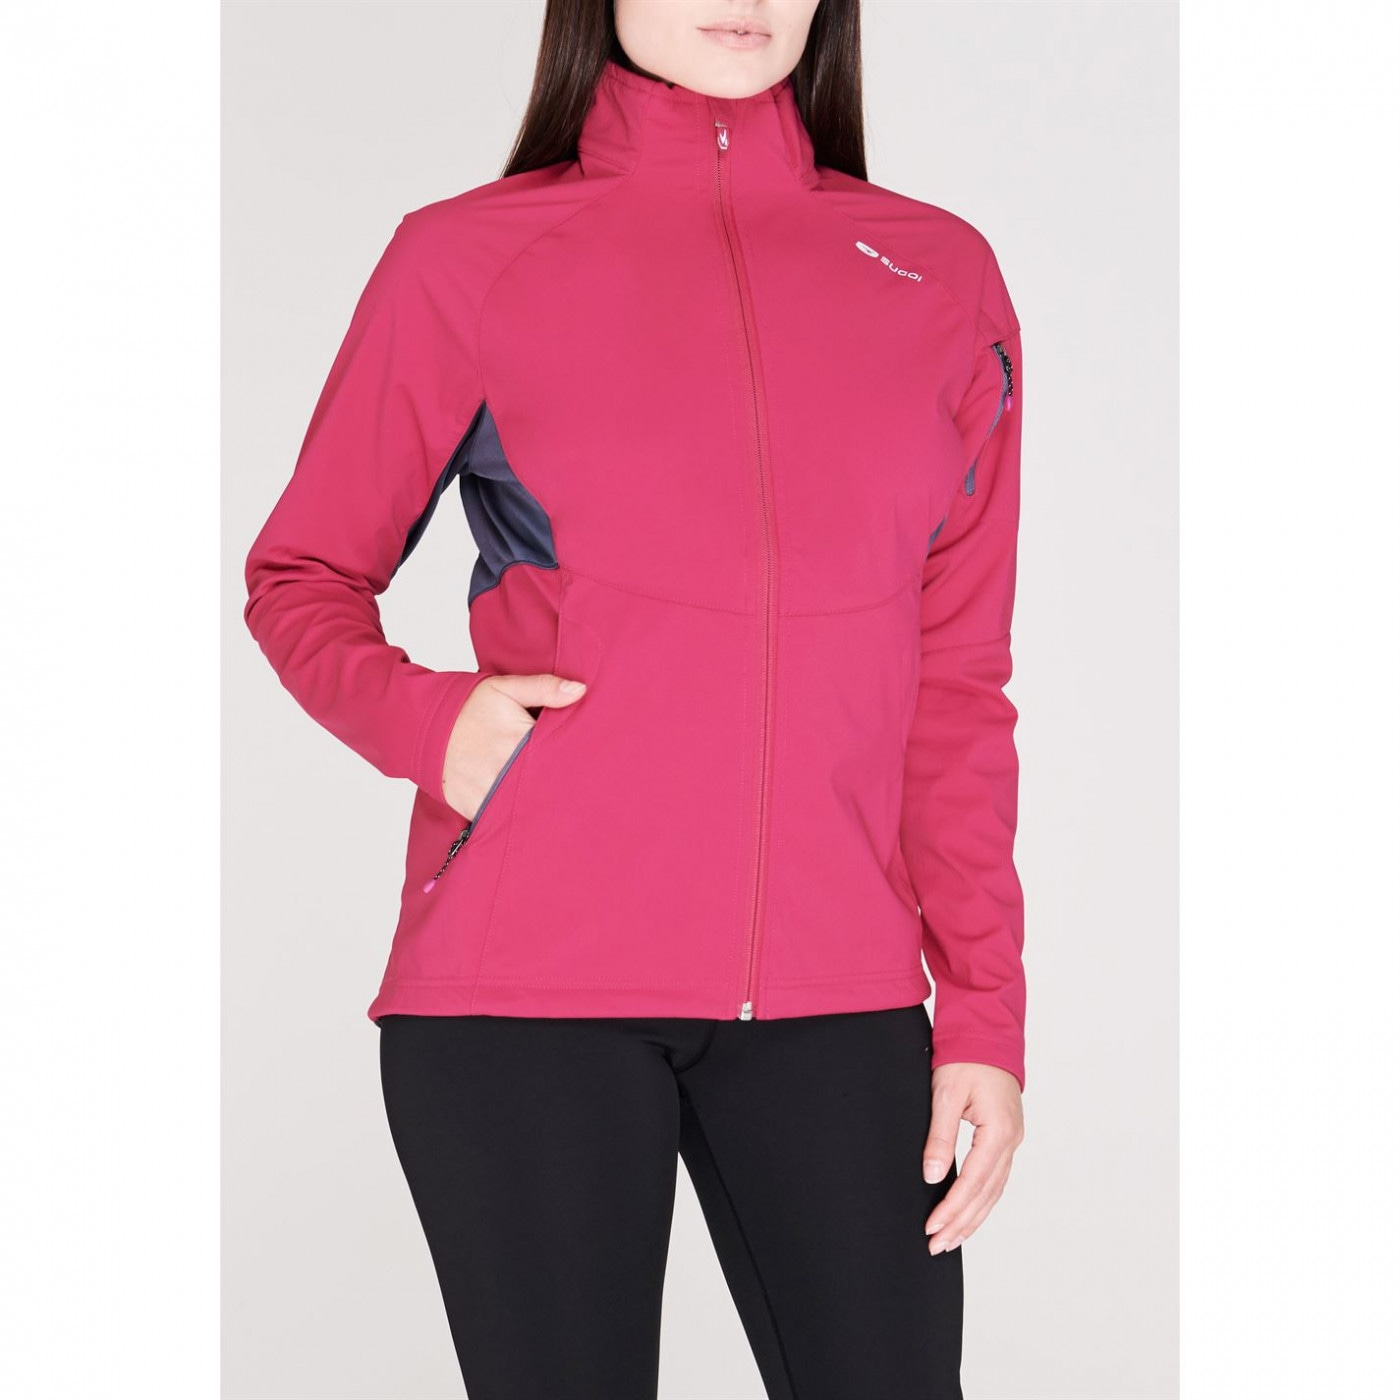 Sugoi Firewall 220 Jacket Ladies